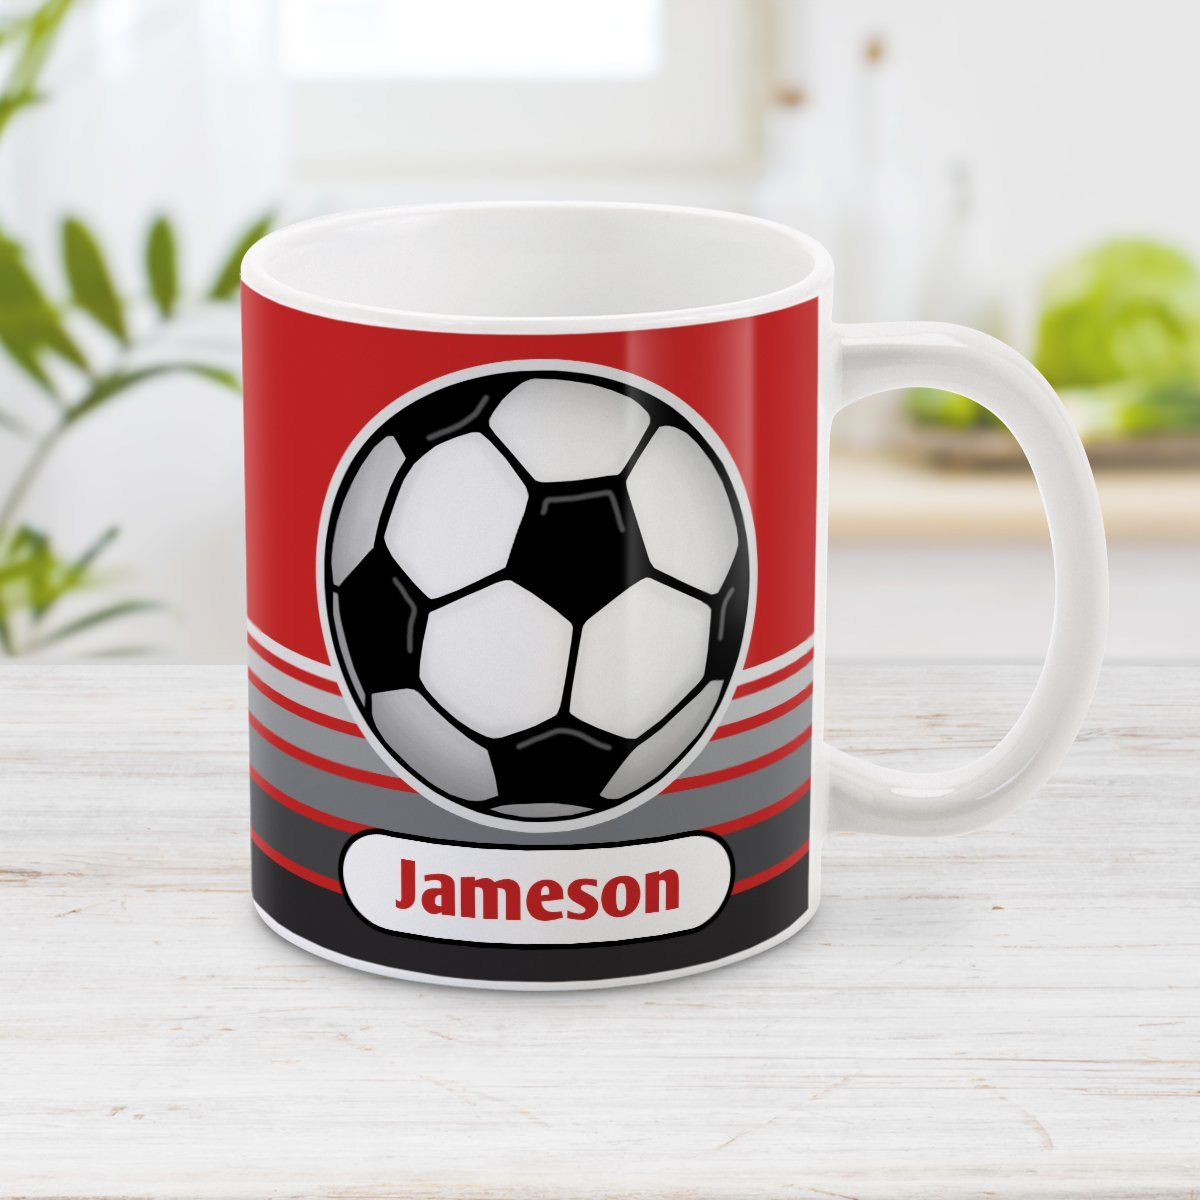 Personalized Gray Gradient Lined Red Soccer Ball Mug at Amy's Coffee Mugs